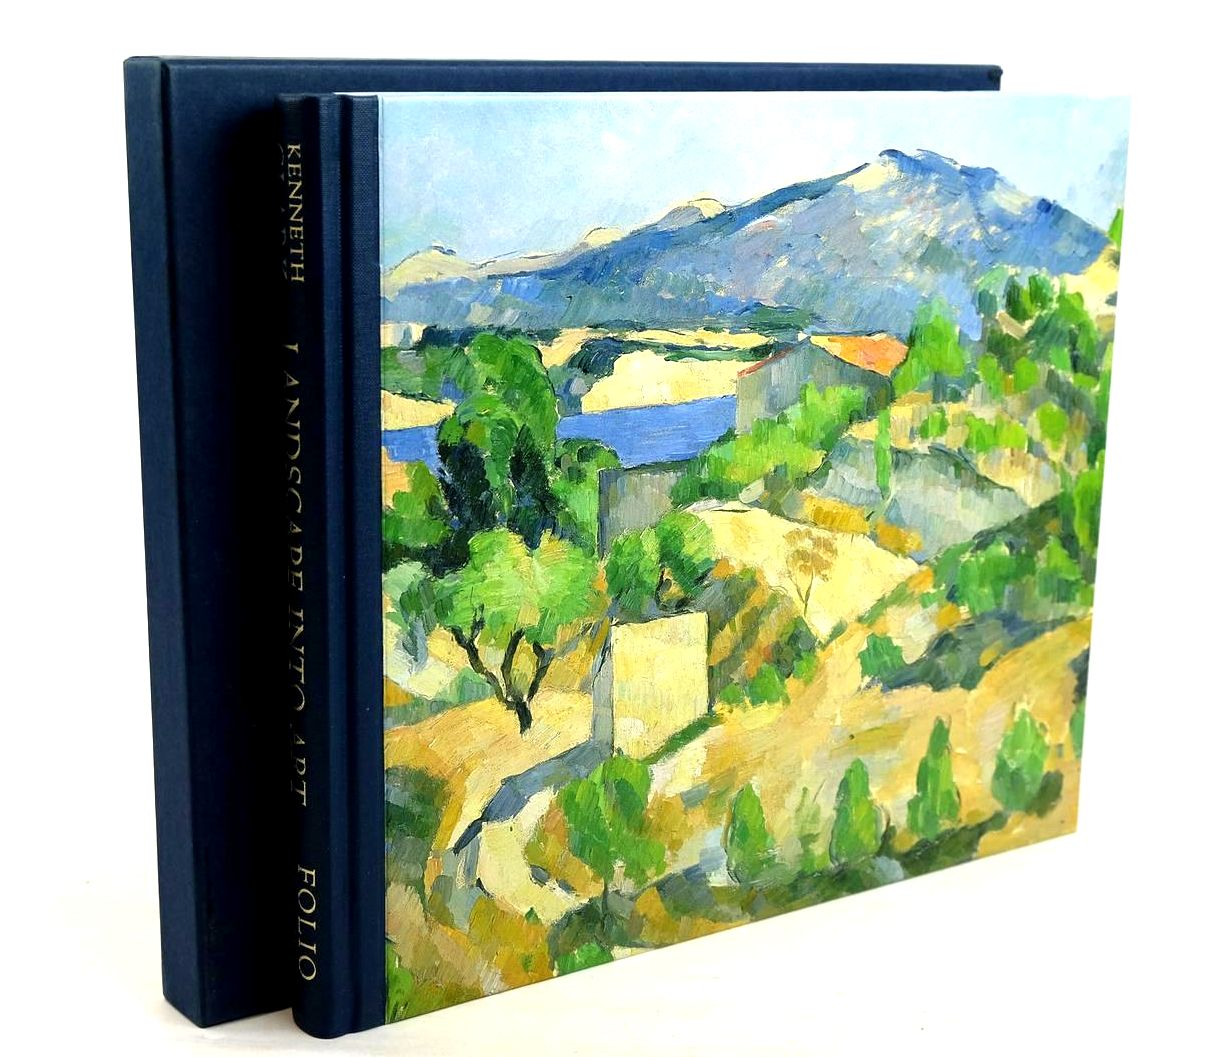 Photo of LANDSCAPE INTO ART written by Clark, Kenneth published by Folio Society (STOCK CODE: 1320326)  for sale by Stella & Rose's Books